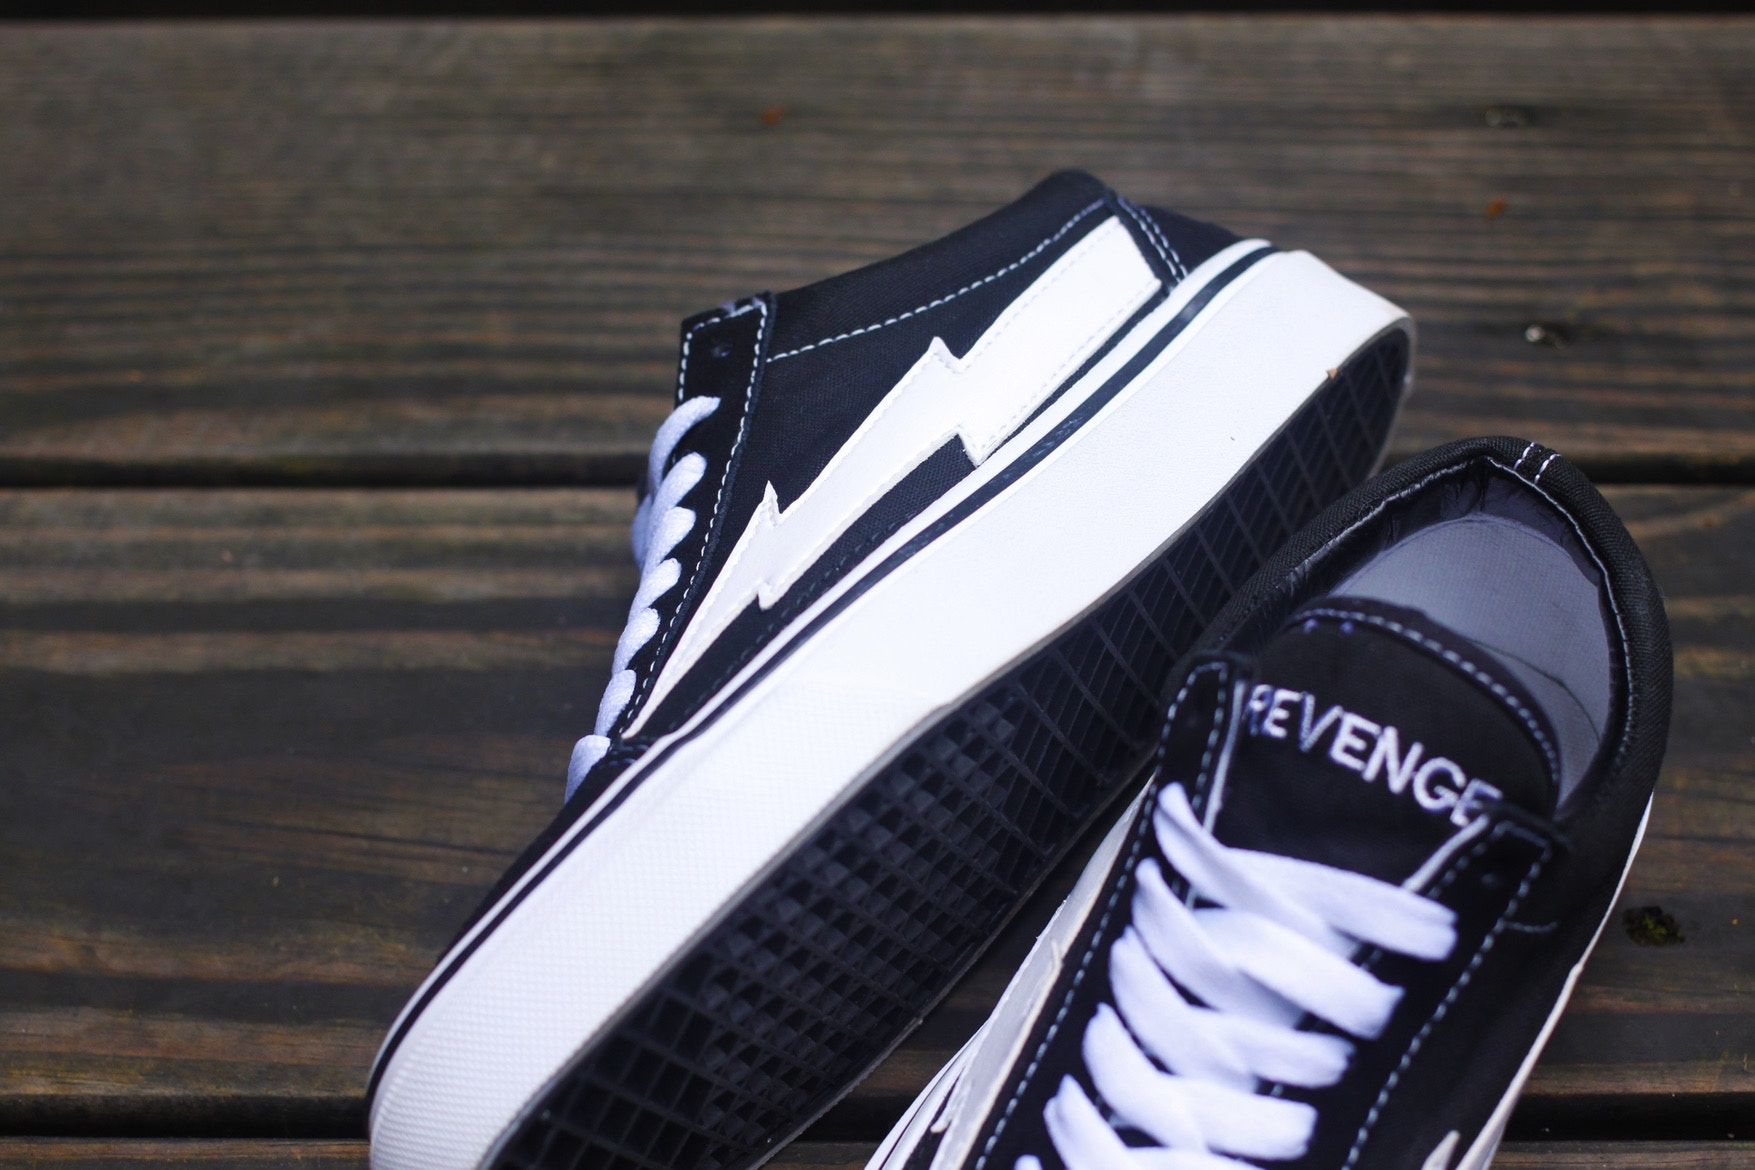 revenge-storm-ian-connor-vans-old-skool-04